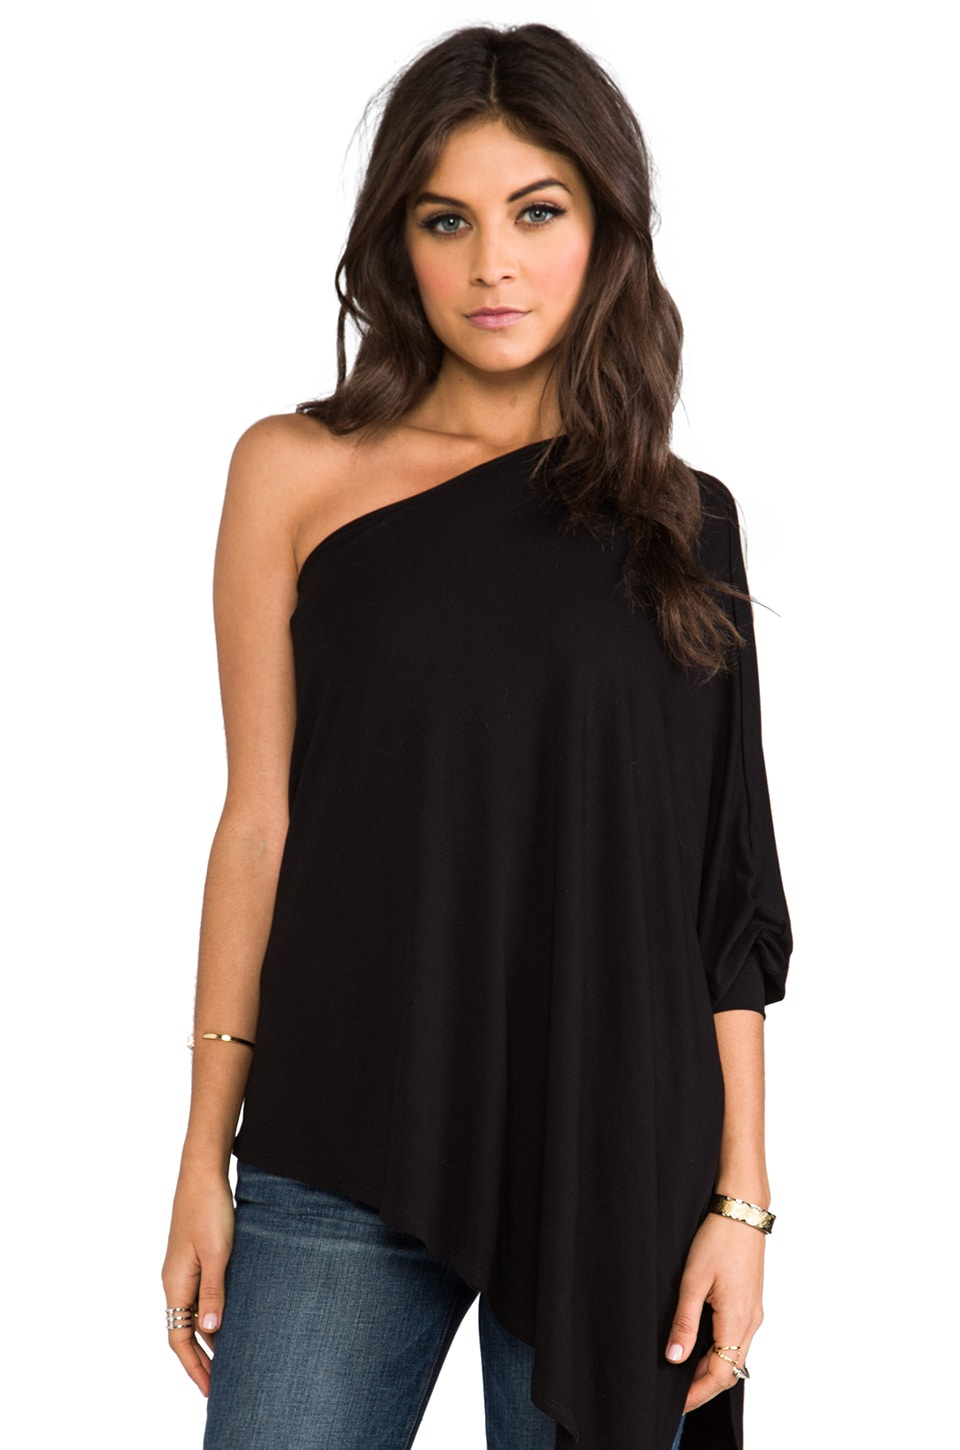 James & Joy Poncho Top in Black